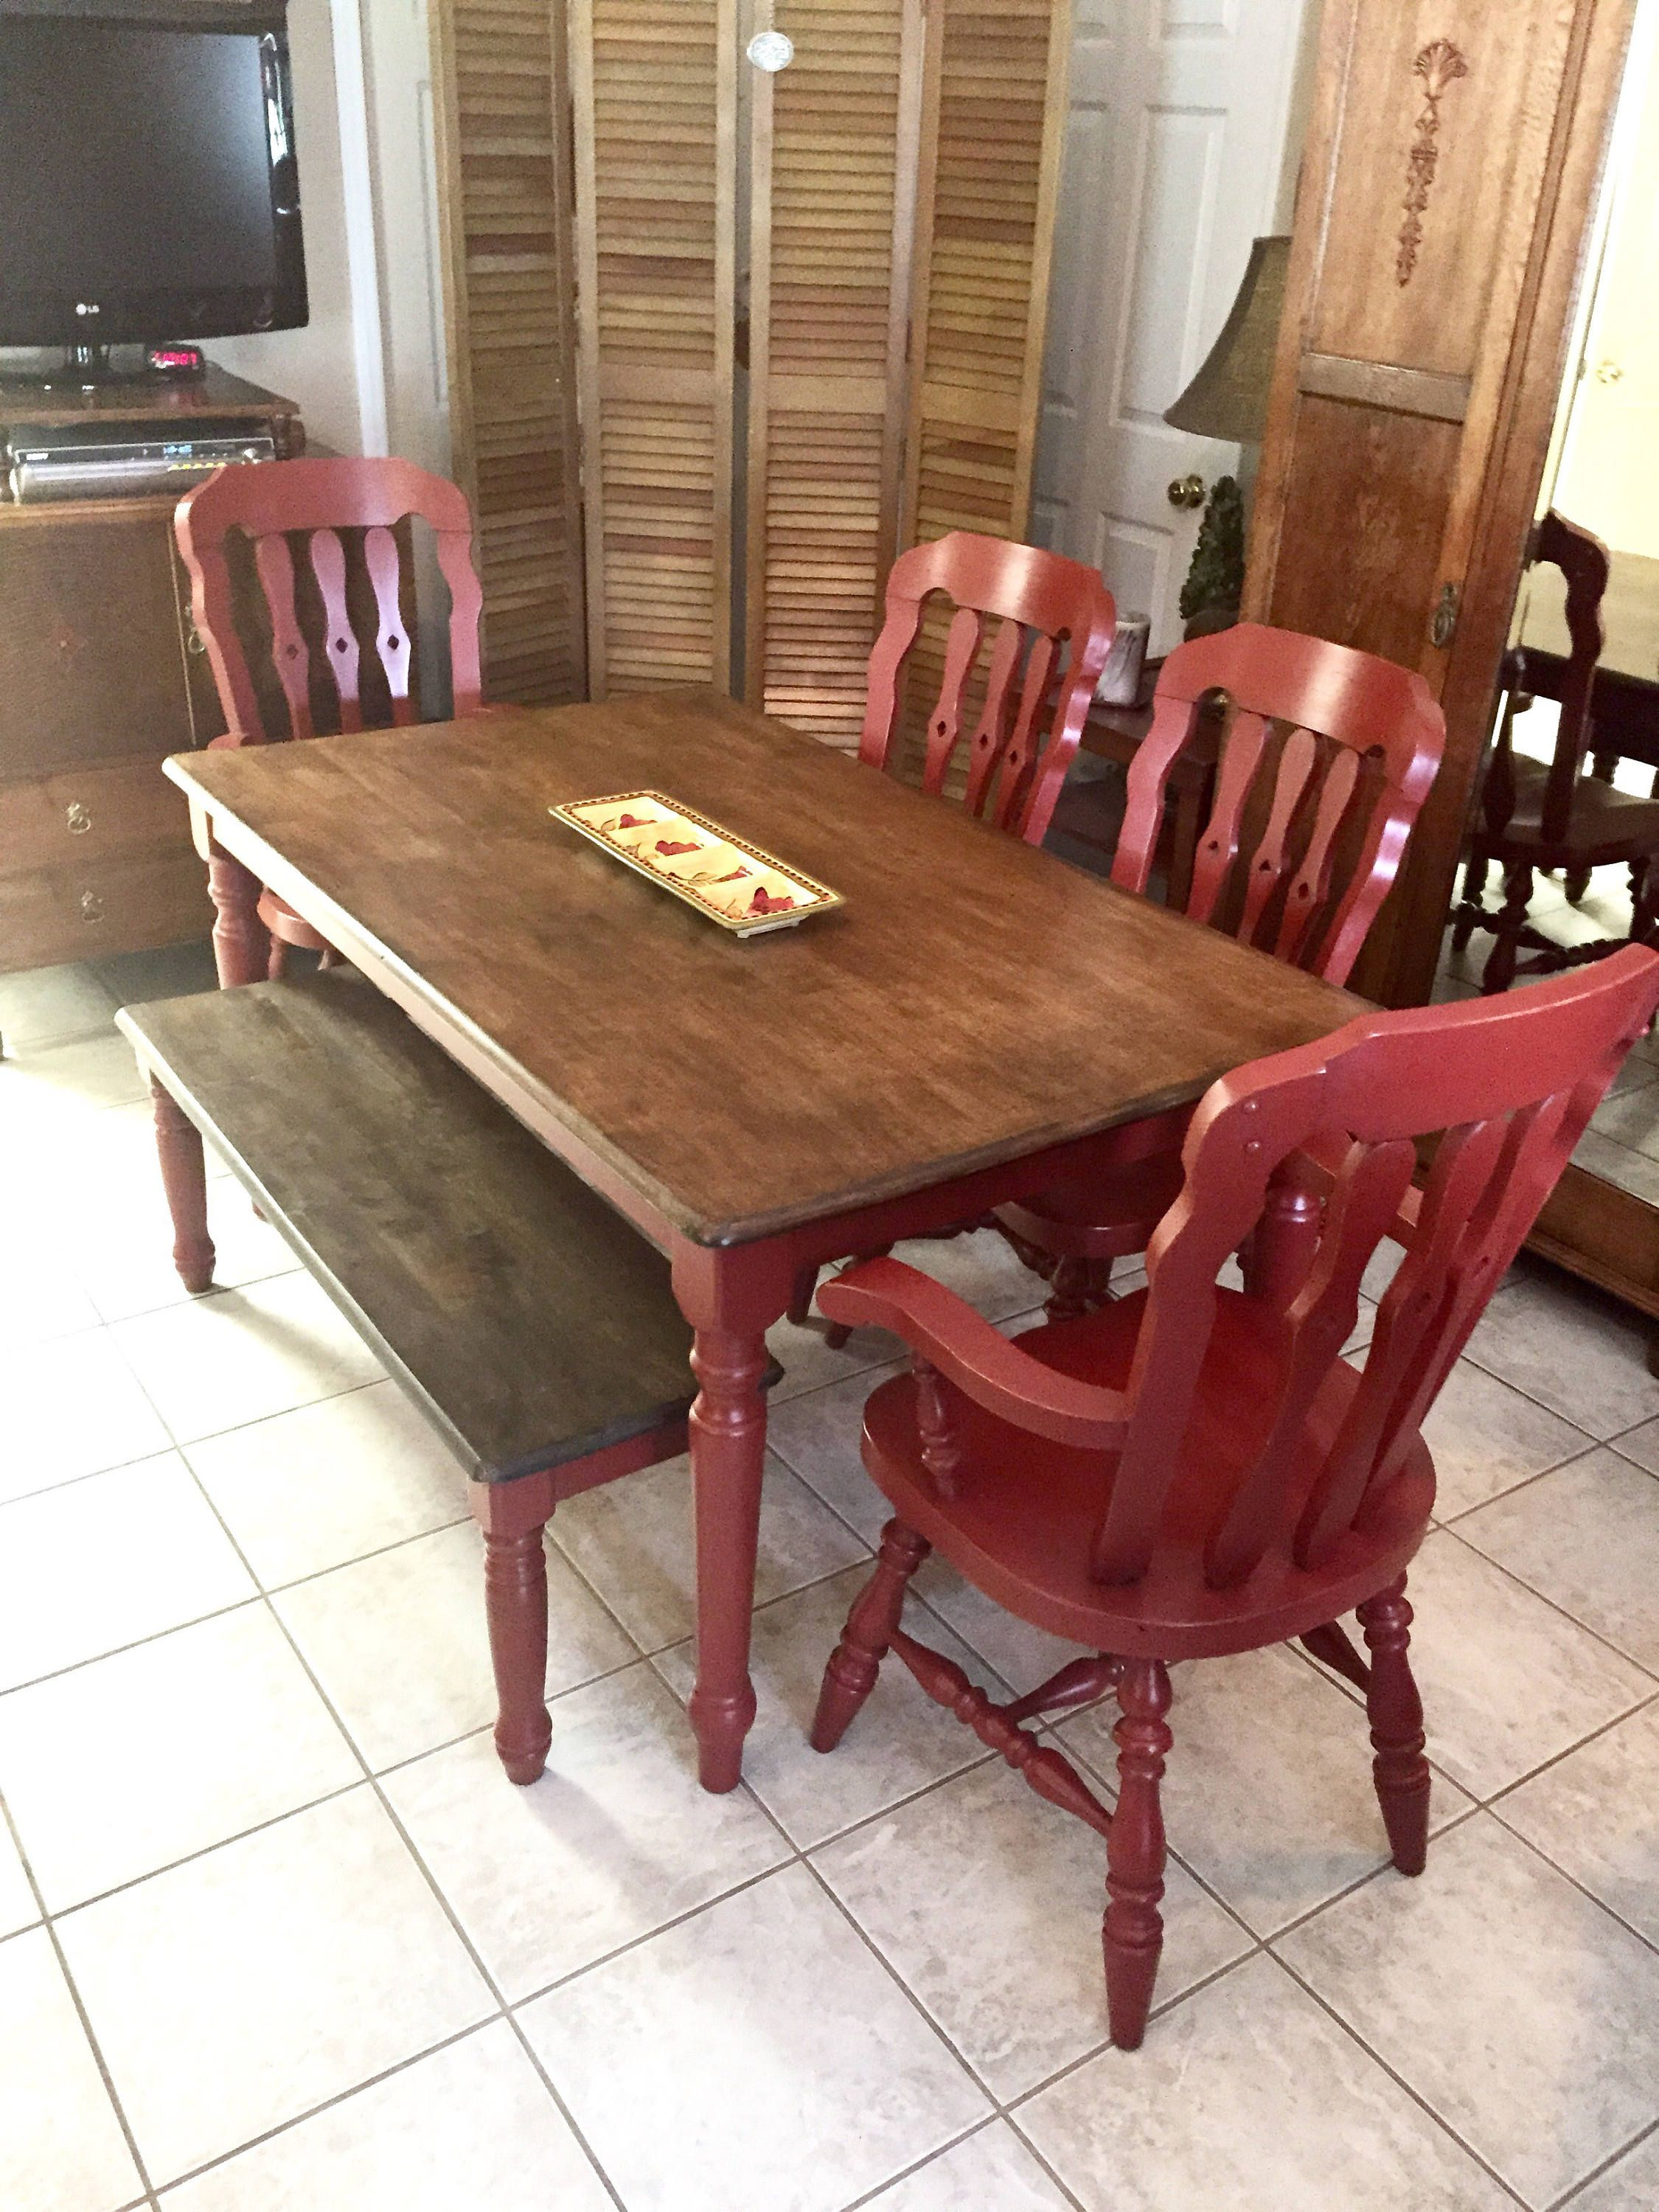 Farm table farmhouse dining chairs painted red rustic